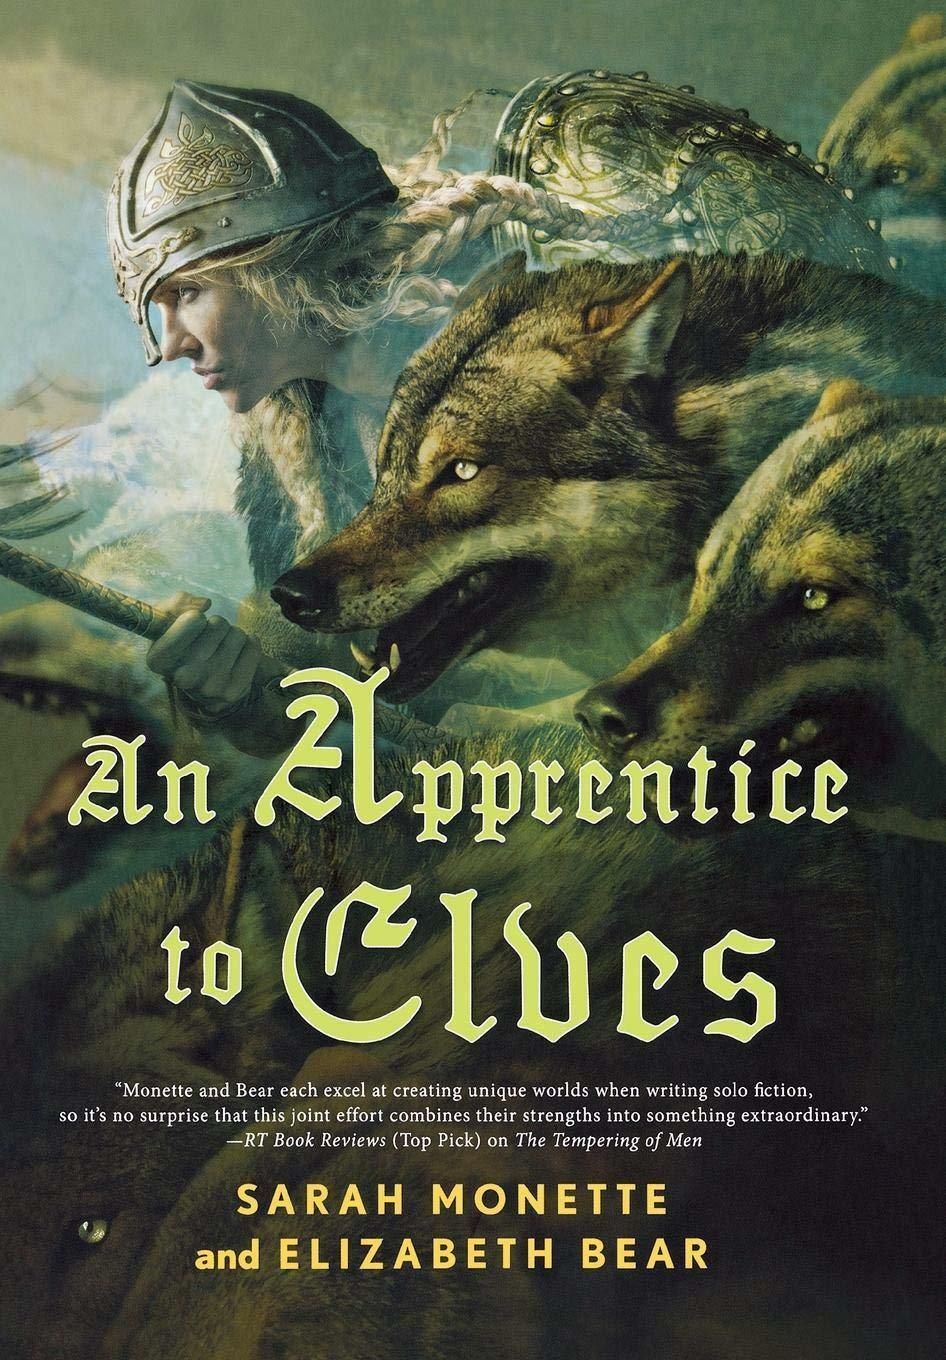 An Apprentice to Elves : Sarah Monette and Elizabeth Bear : New Hardcover  @ZB